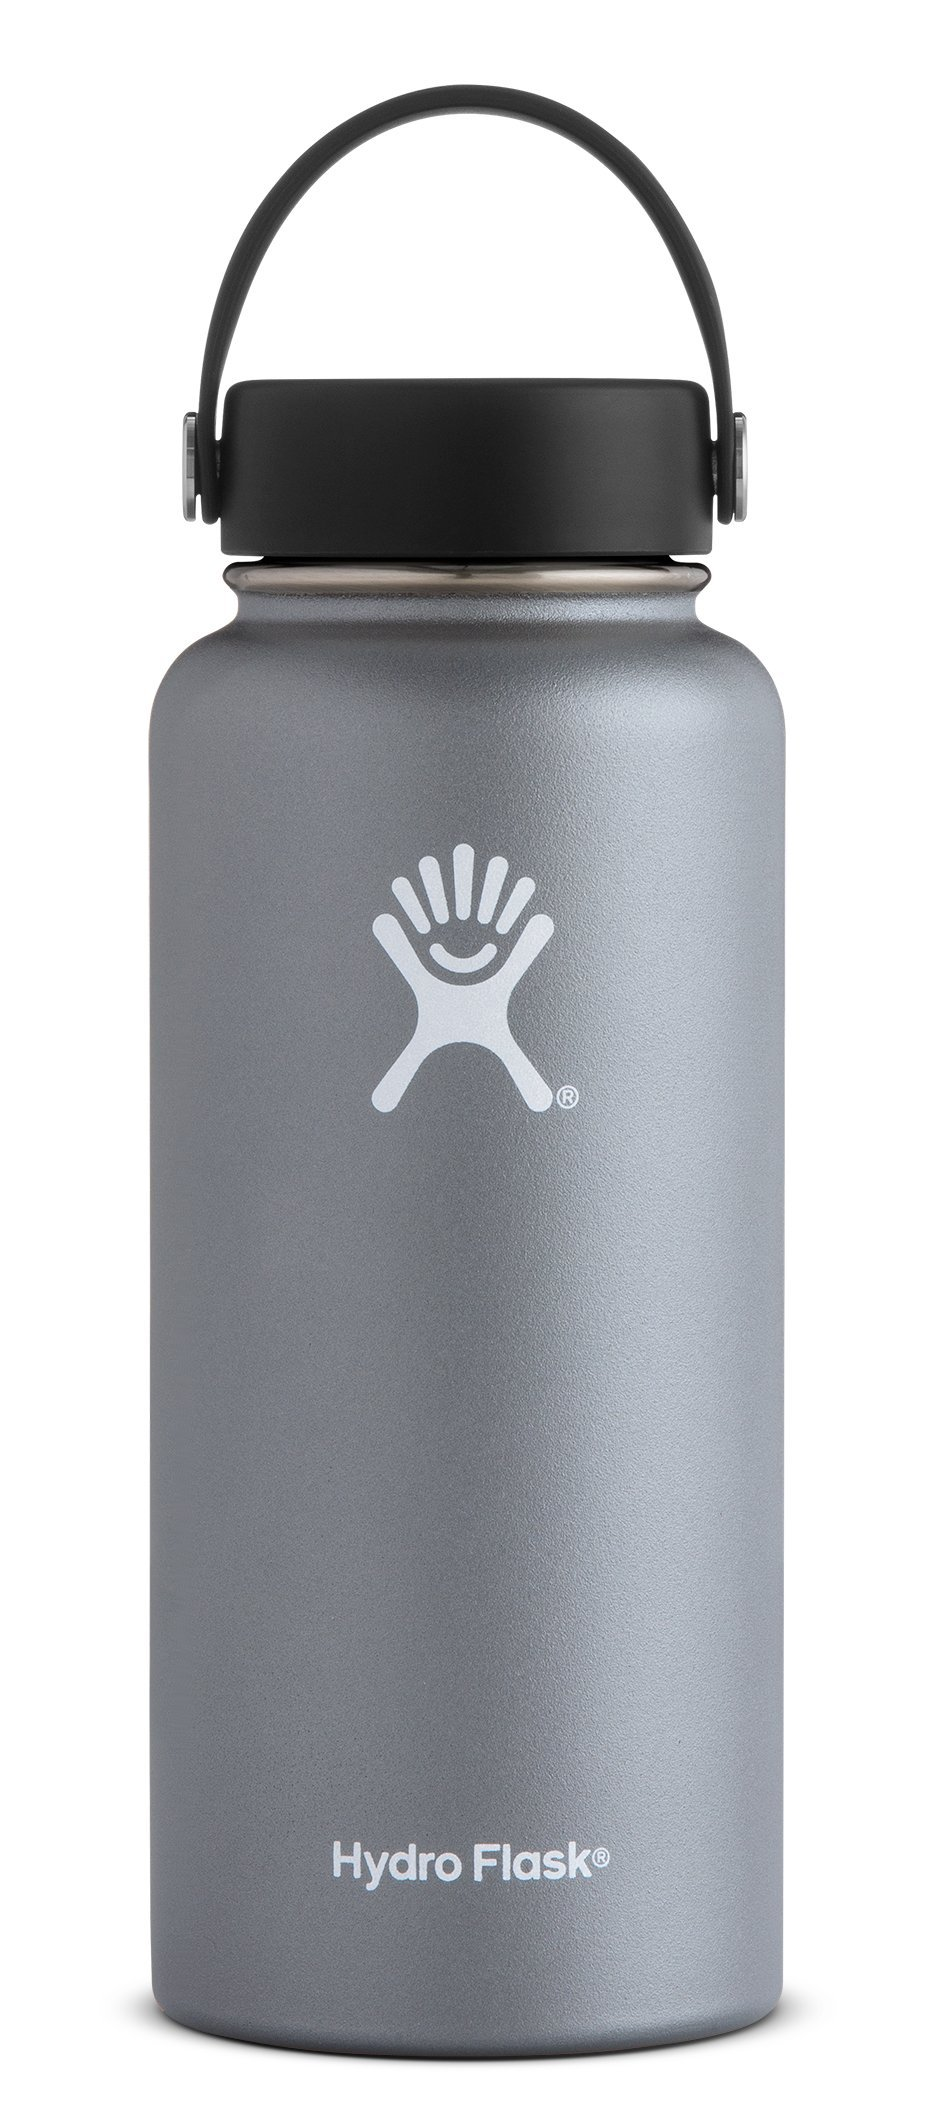 Hydro Flask 32 oz Double Wall Vacuum Insulated Stainless Steel Leak Proof Sports Water Bottle, Wide Mouth with BPA Free Flex Cap, Graphite